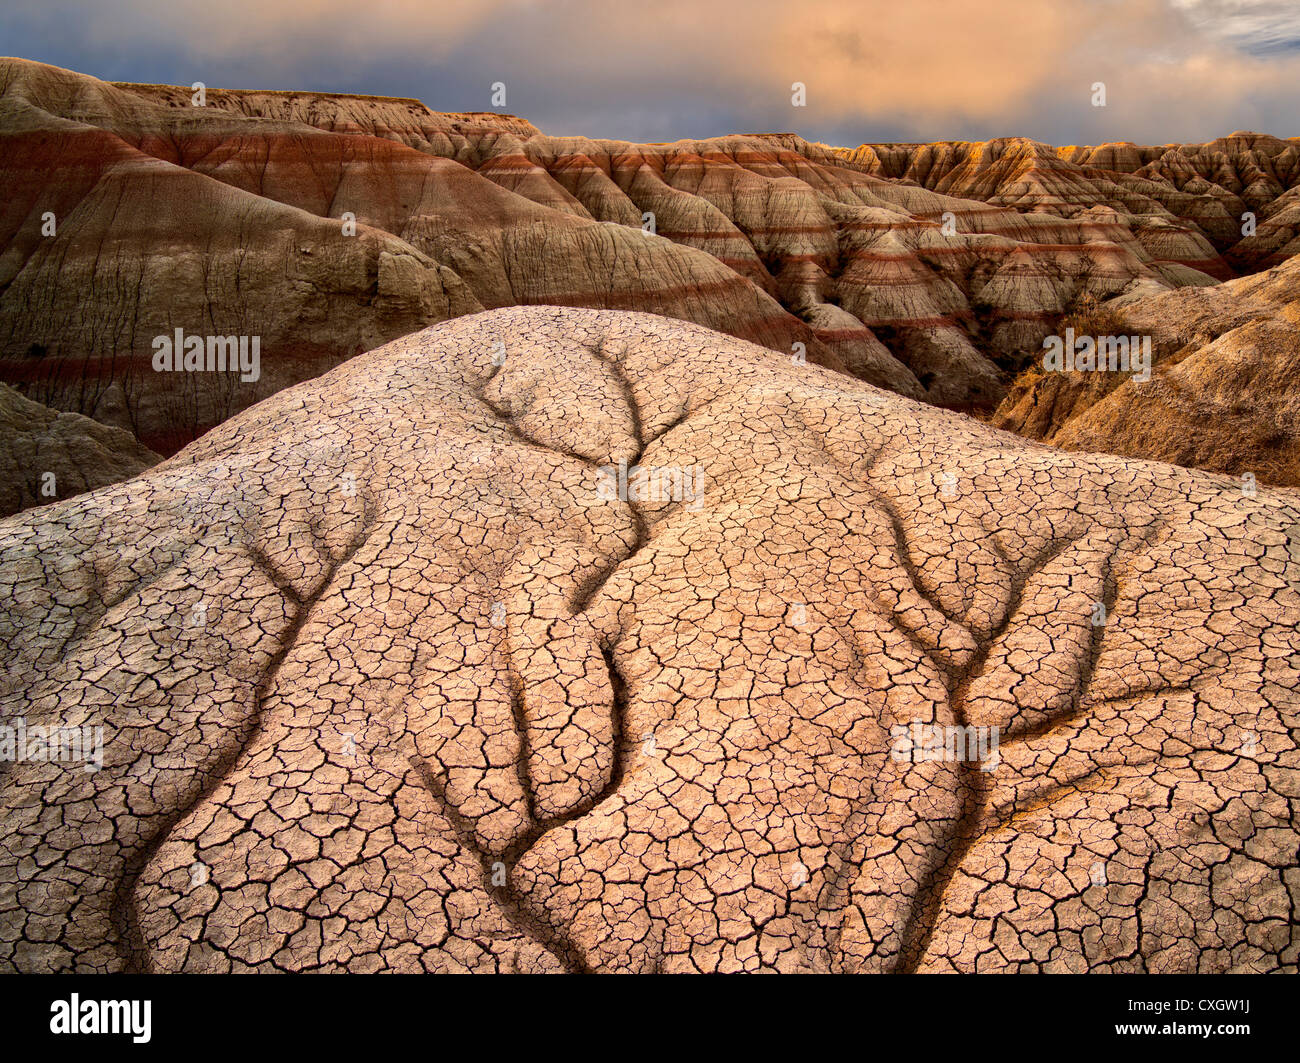 Erodiert und gebrochene Gestein und Schlamm Formationen. Badlands Nationalpark. South Dakota Formationen. Stockbild